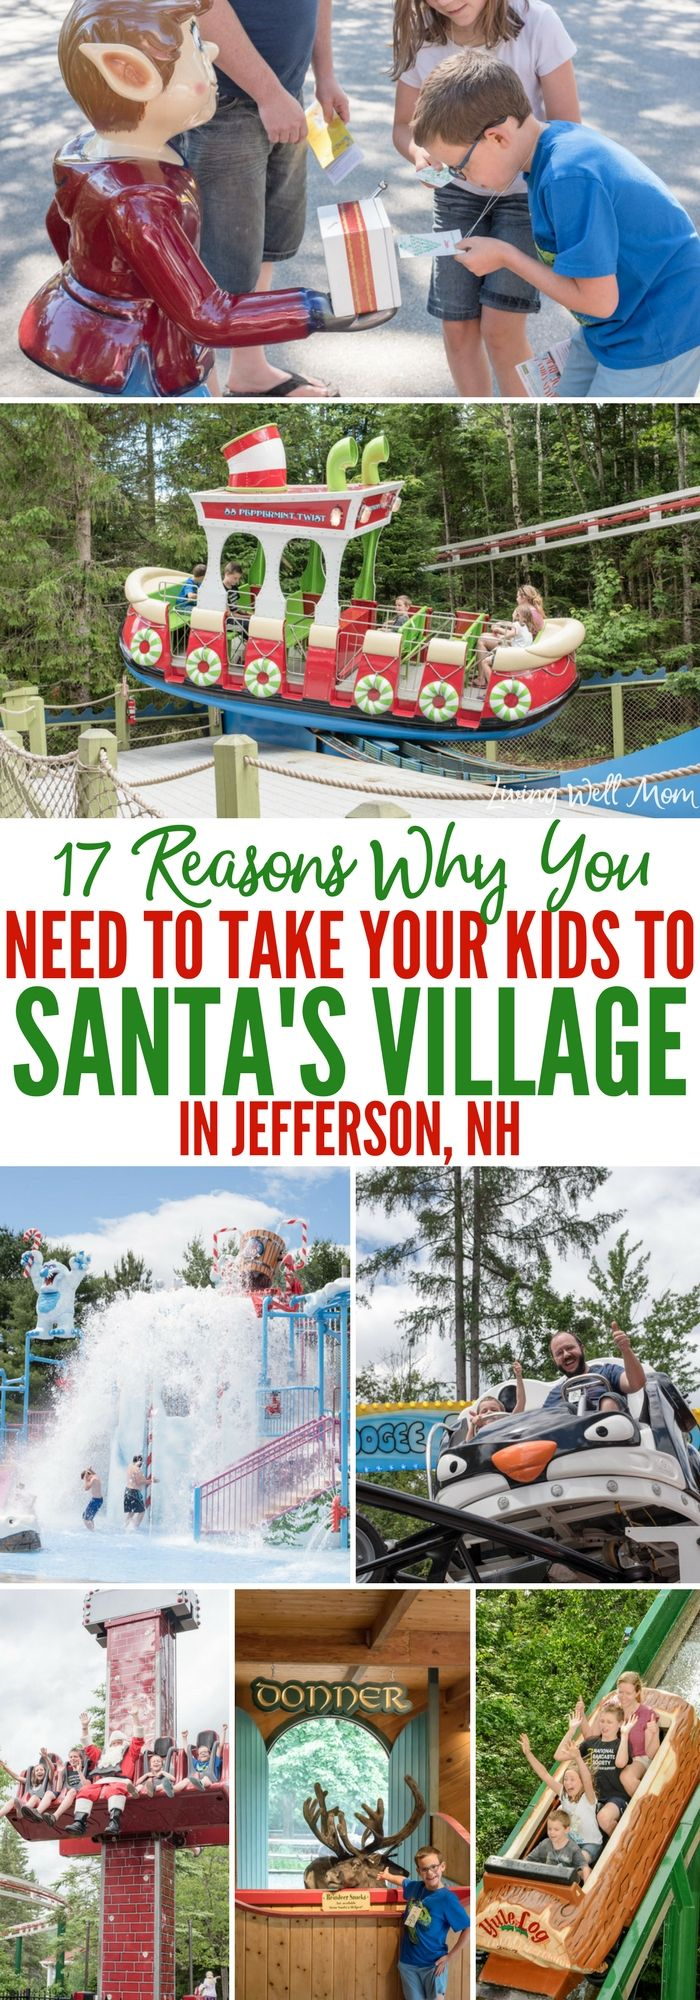 17 Reasons Why You Need to Take Your Family to Santa's Village in Jefferson, NH - from meeting Santa himself to feeding his reindeer, fun roller coasters and an awesome watermark, Santa's Village is an amazing family attraction the whole family will love! (sponsored)